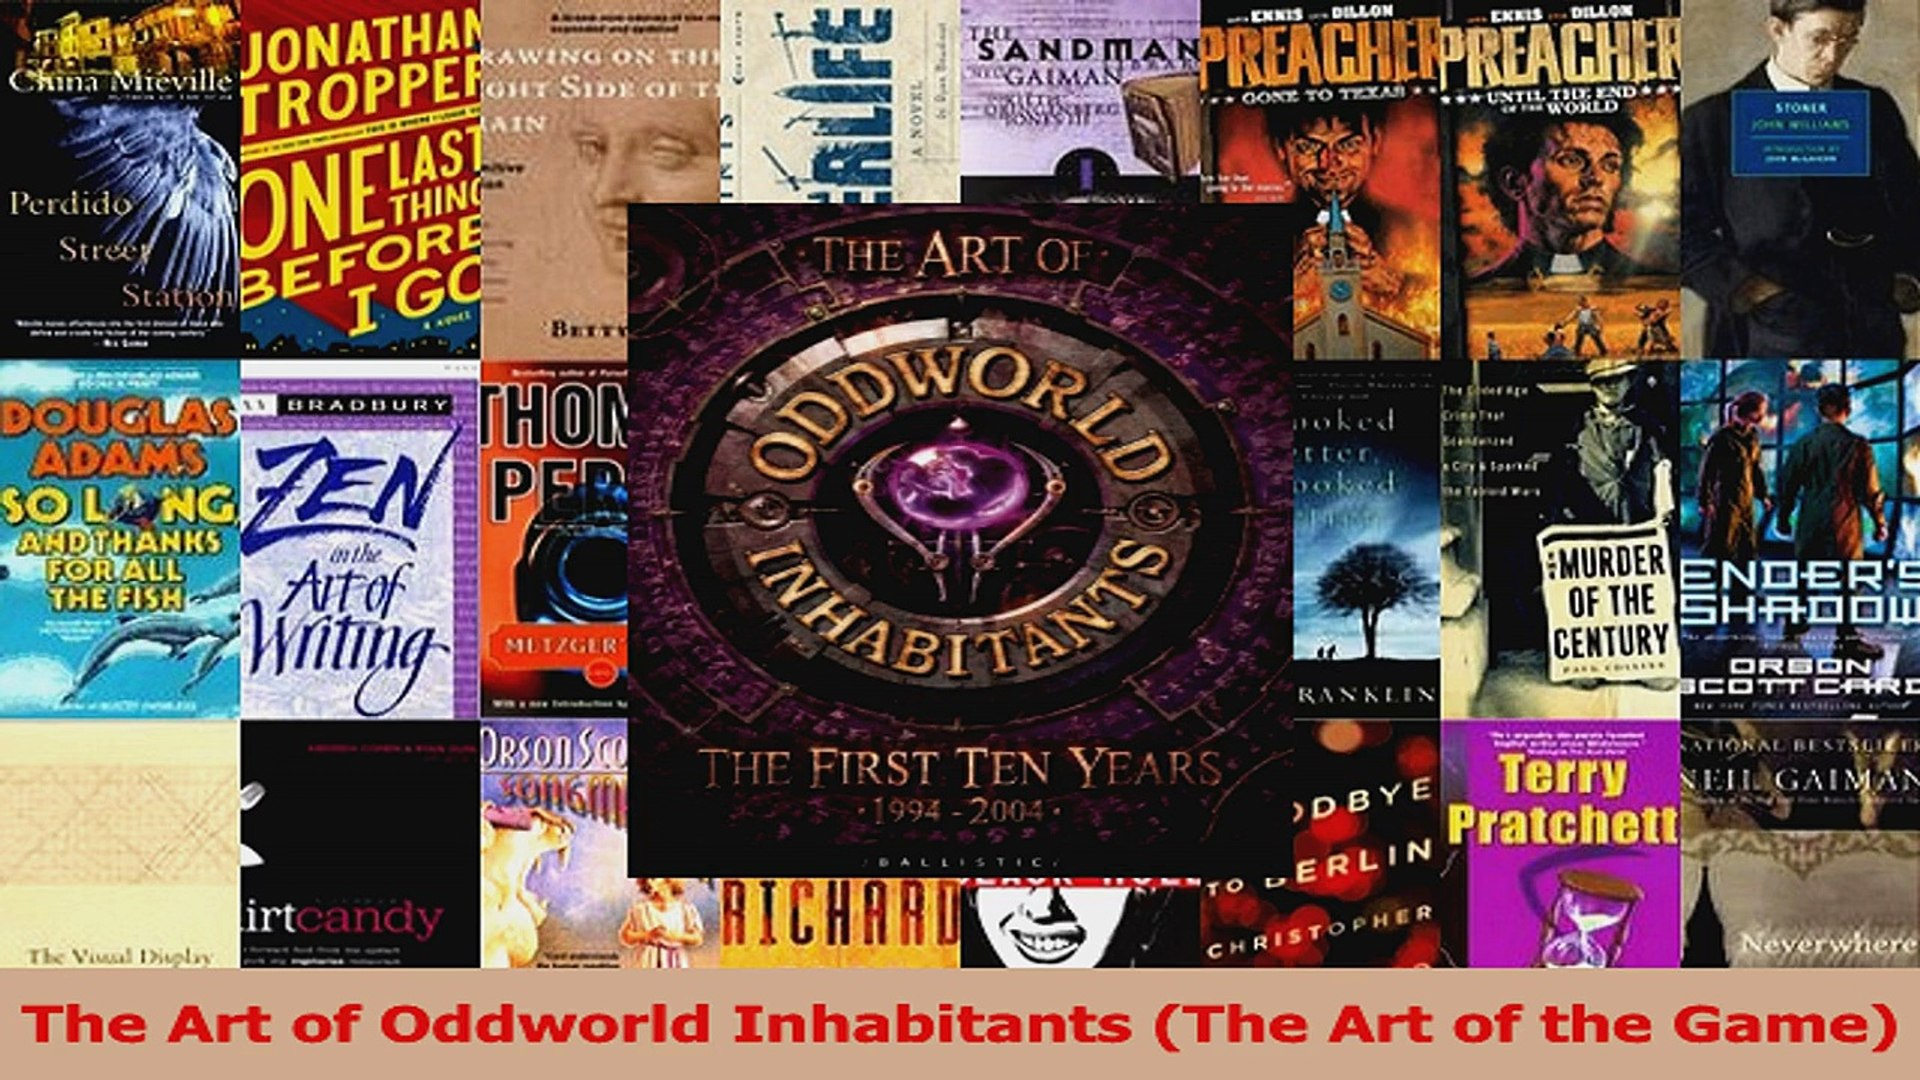 Read The Art of Oddworld Inhabitants The Art of the Game Ebook Free